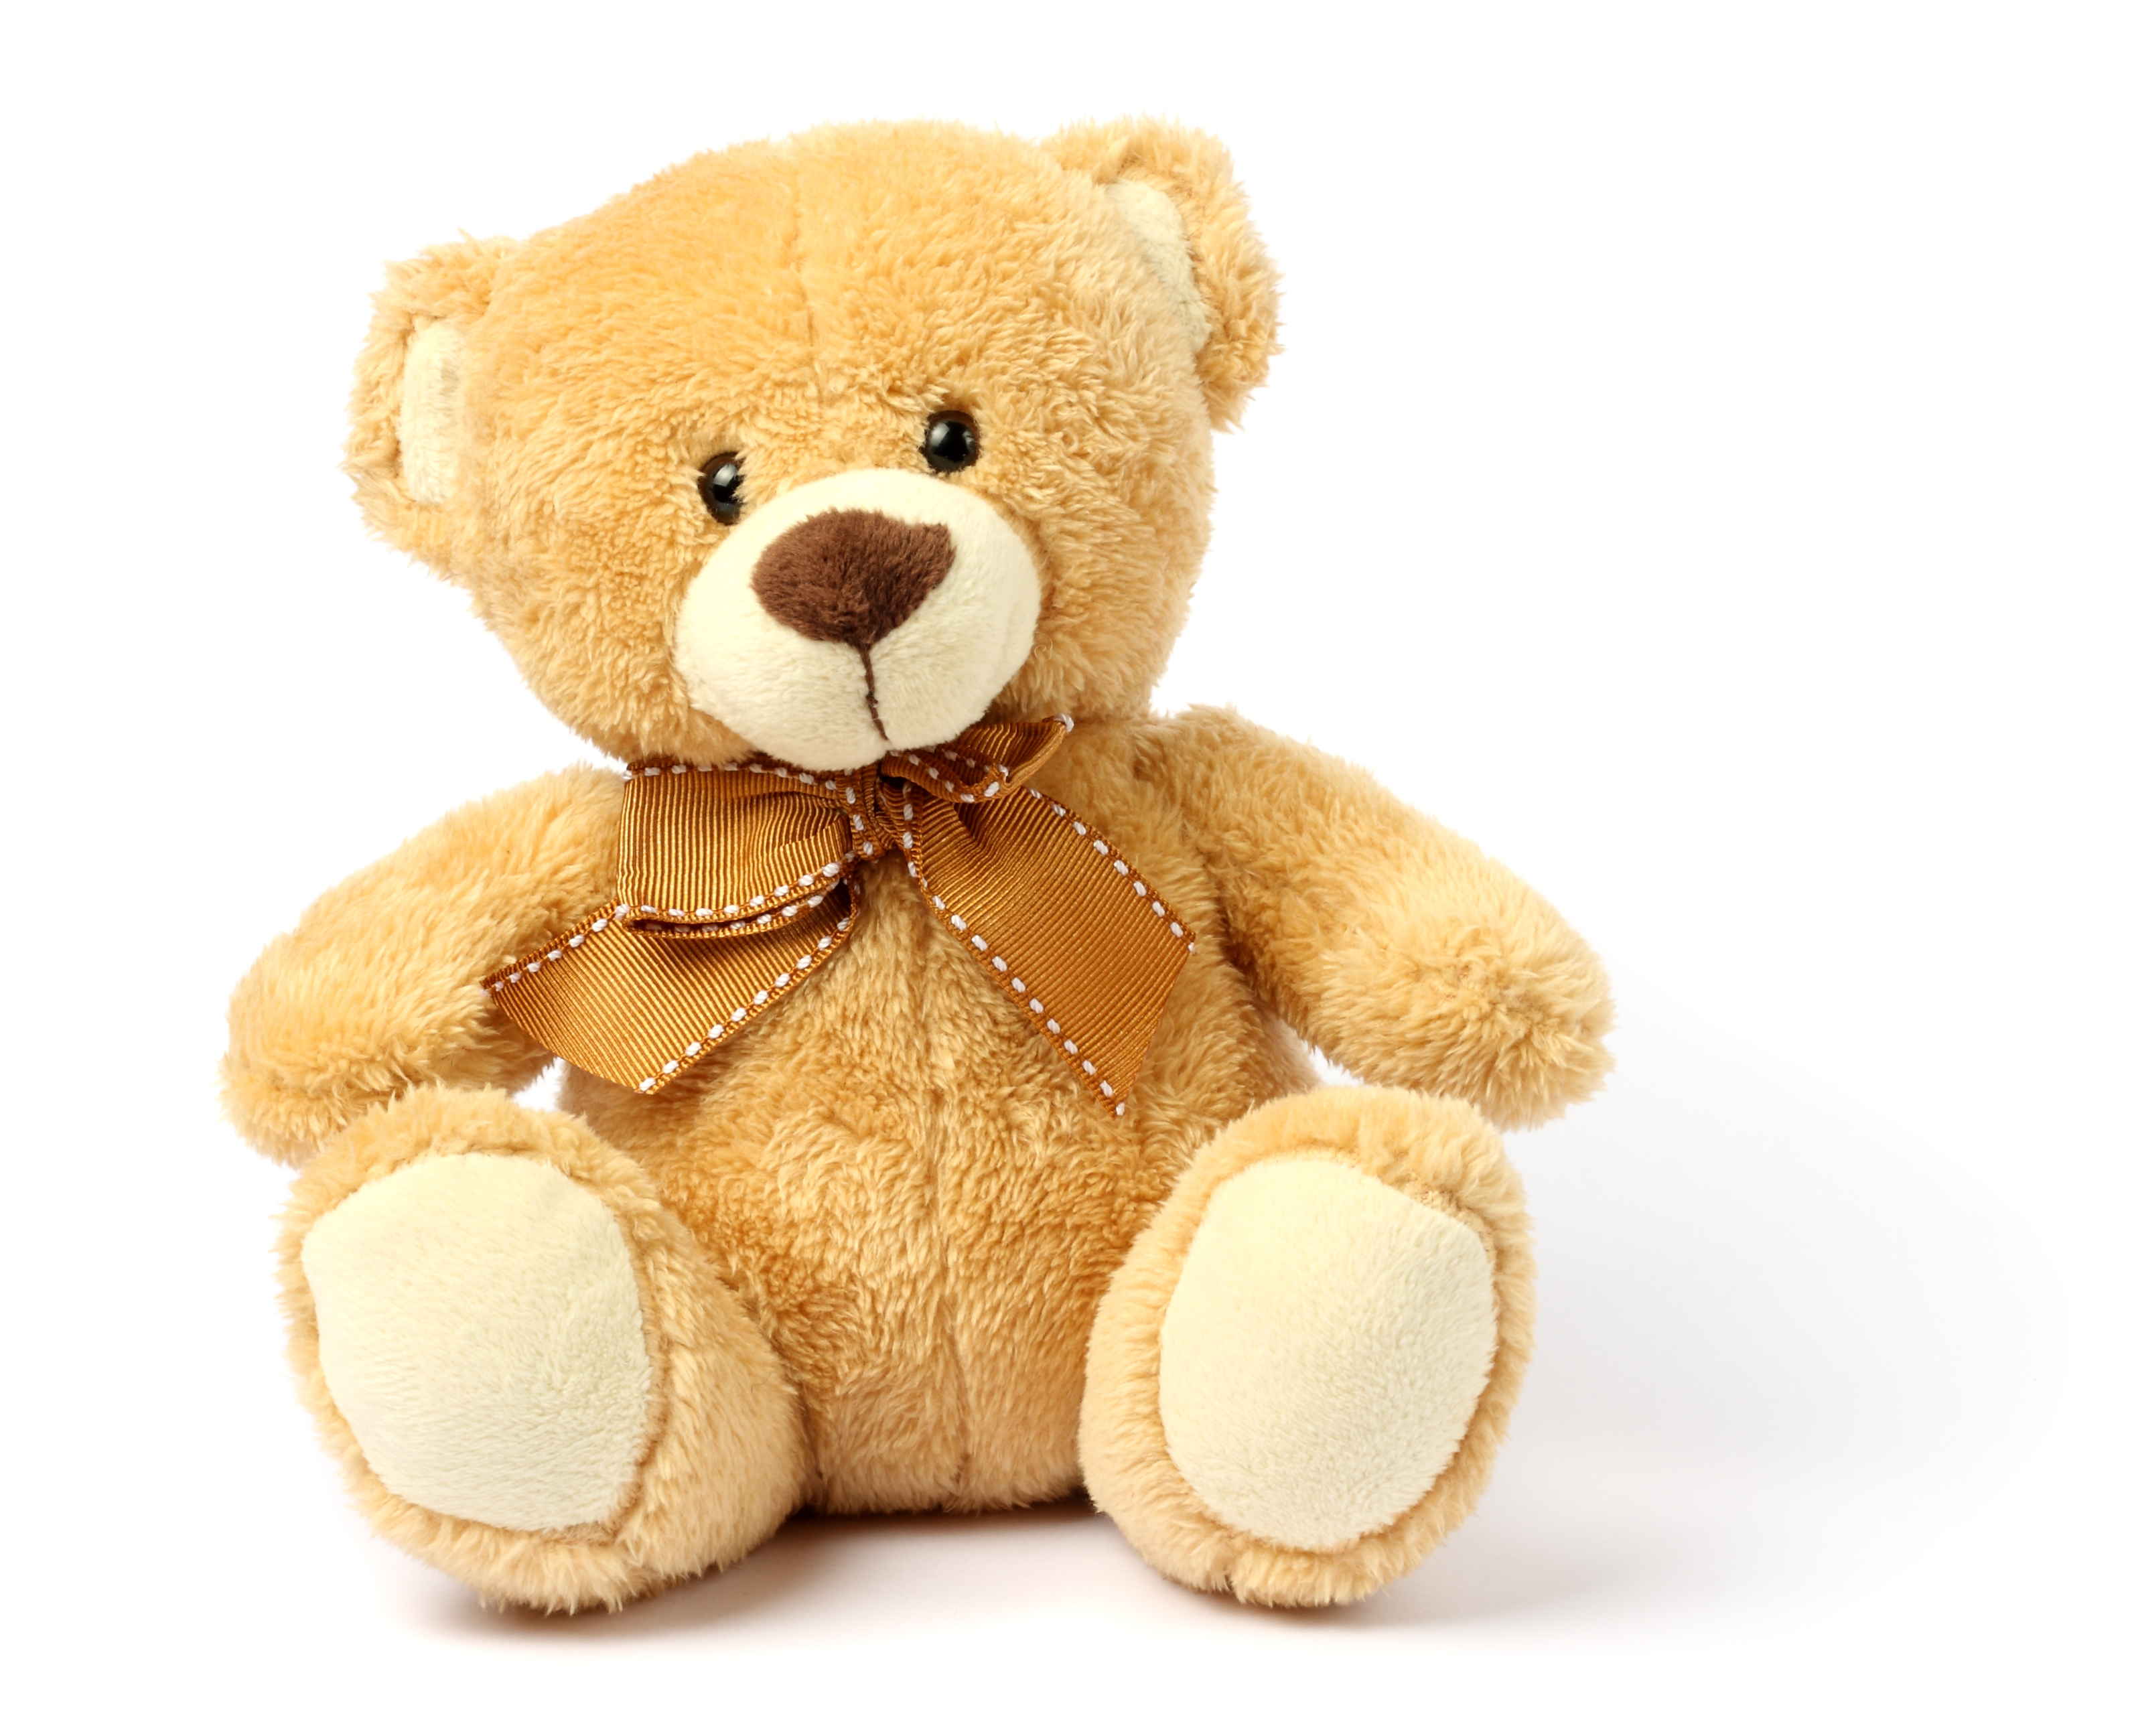 Teddy Bear Attacker with Anger Management Issues Admits Using Steroids